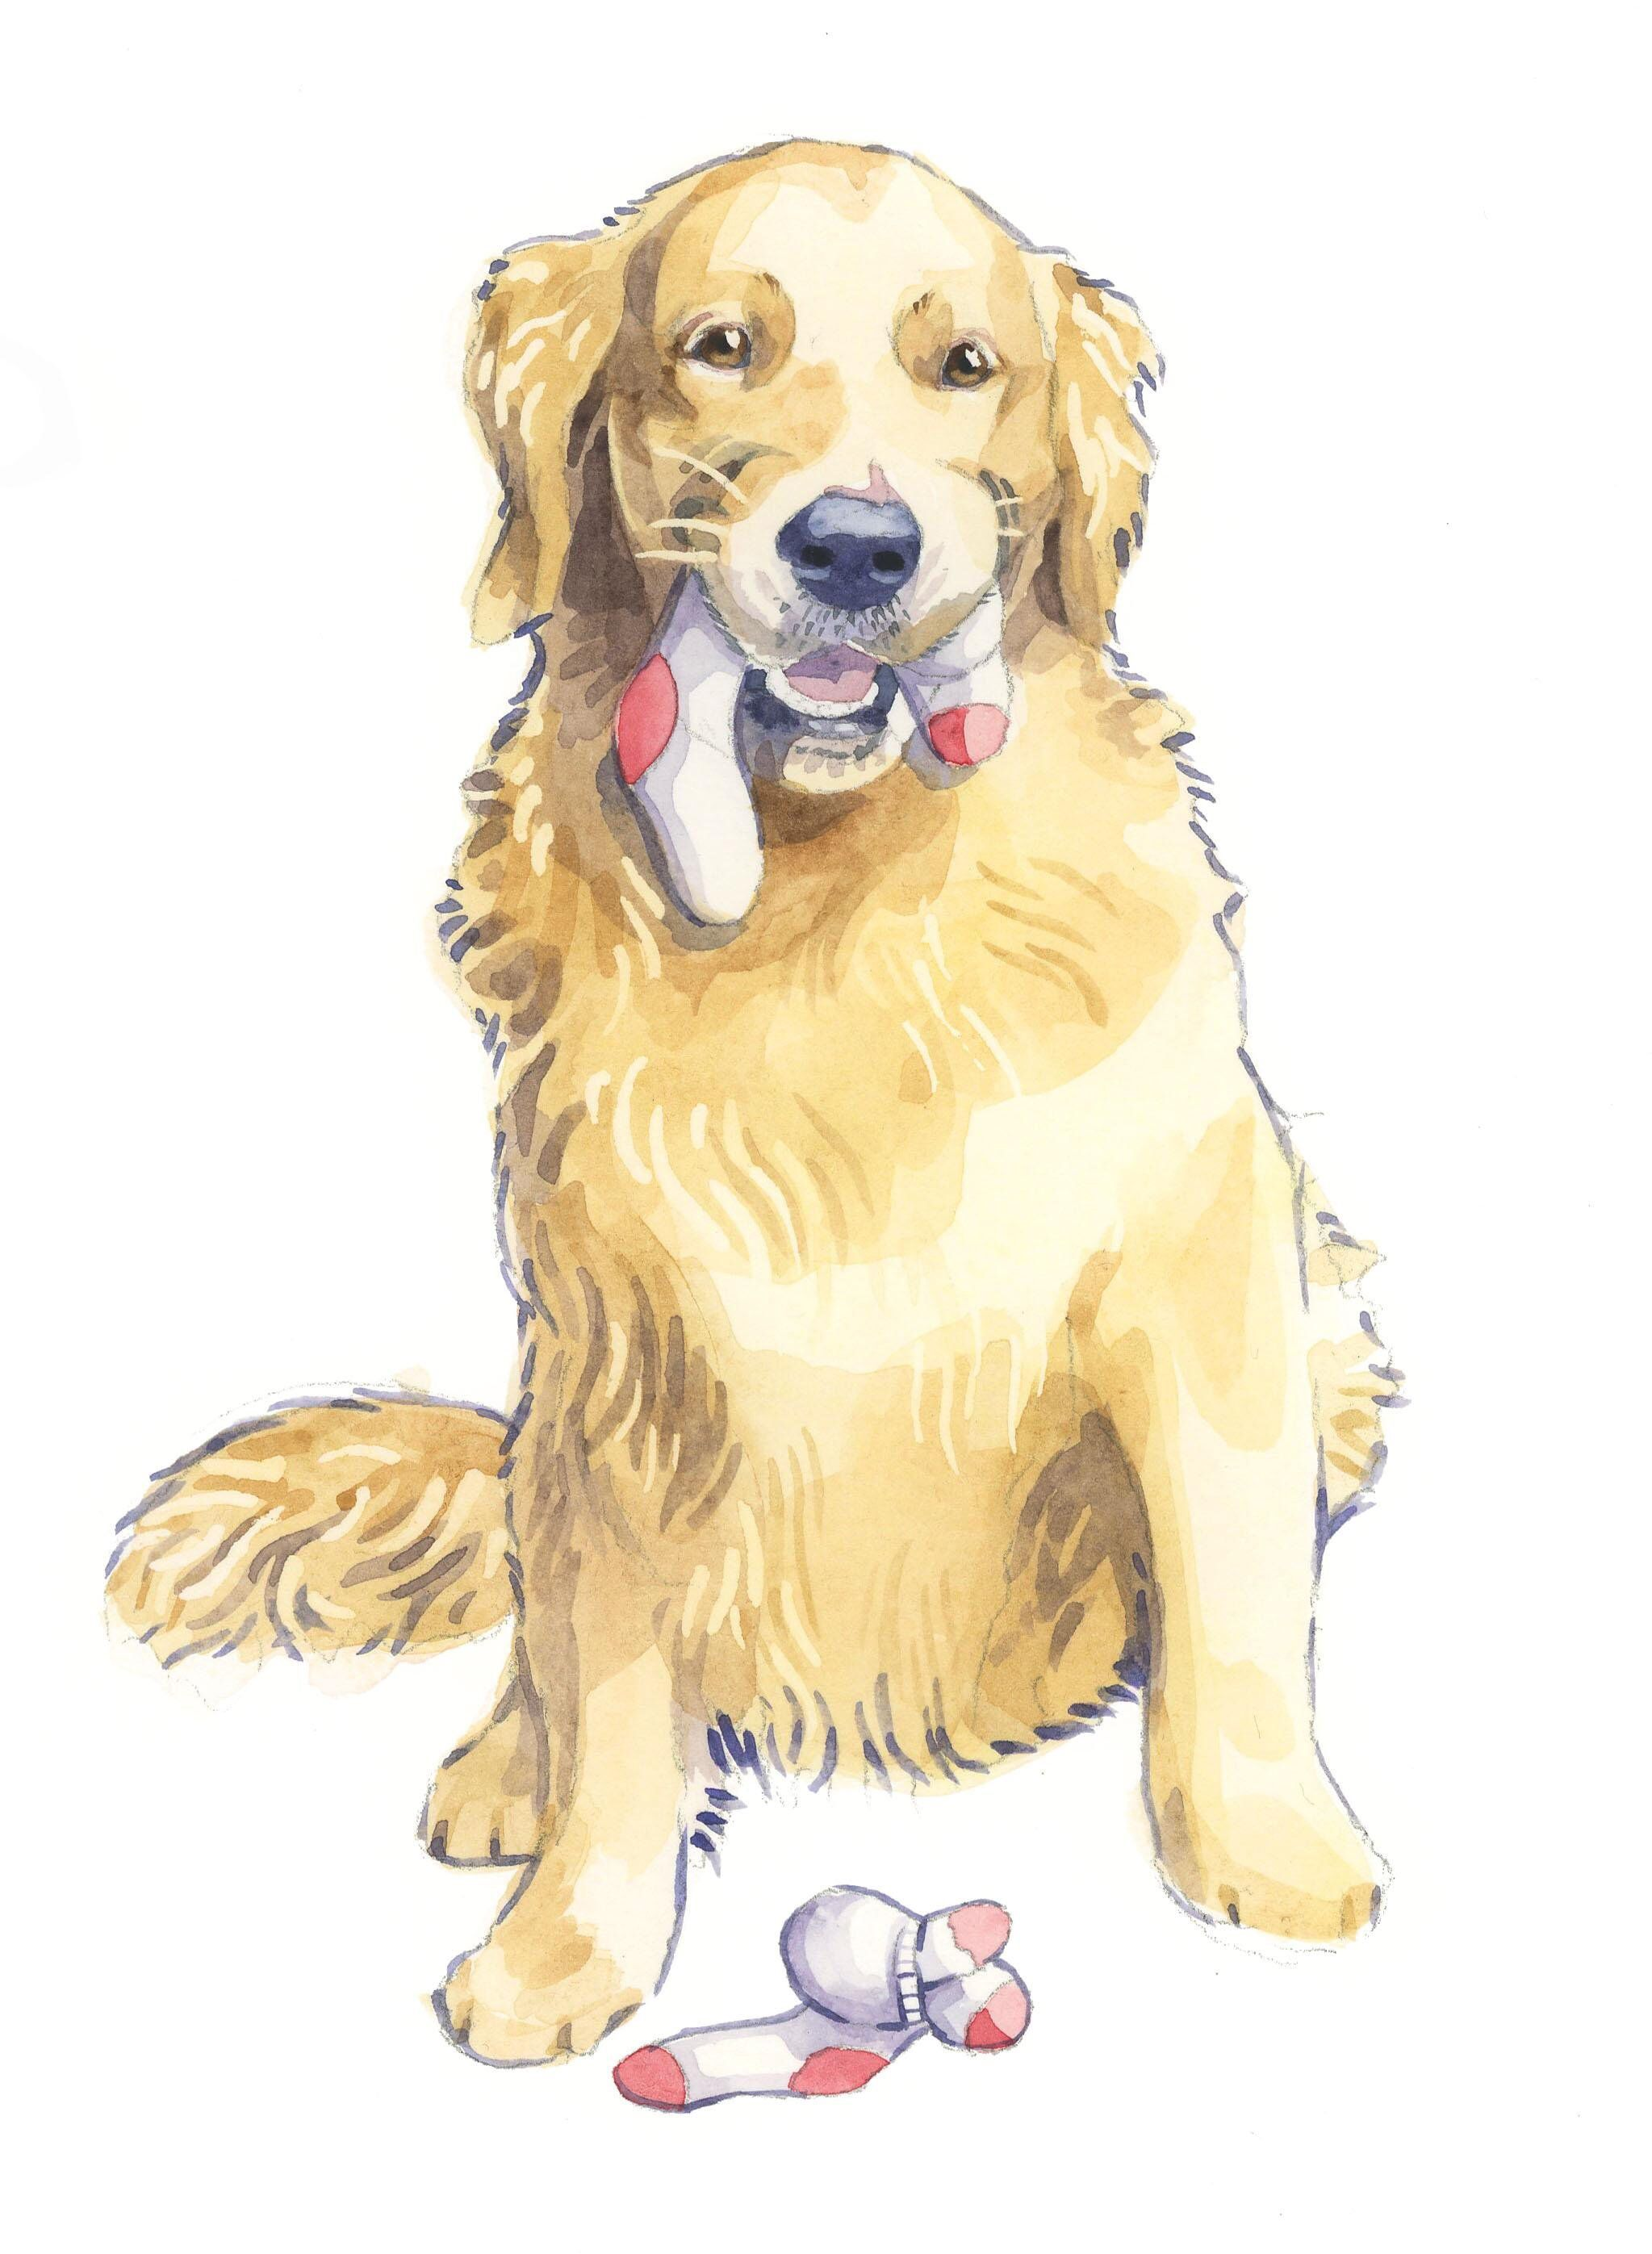 Pin By K Lowe On Dogs Golden Retriever Drawing Golden Retriever